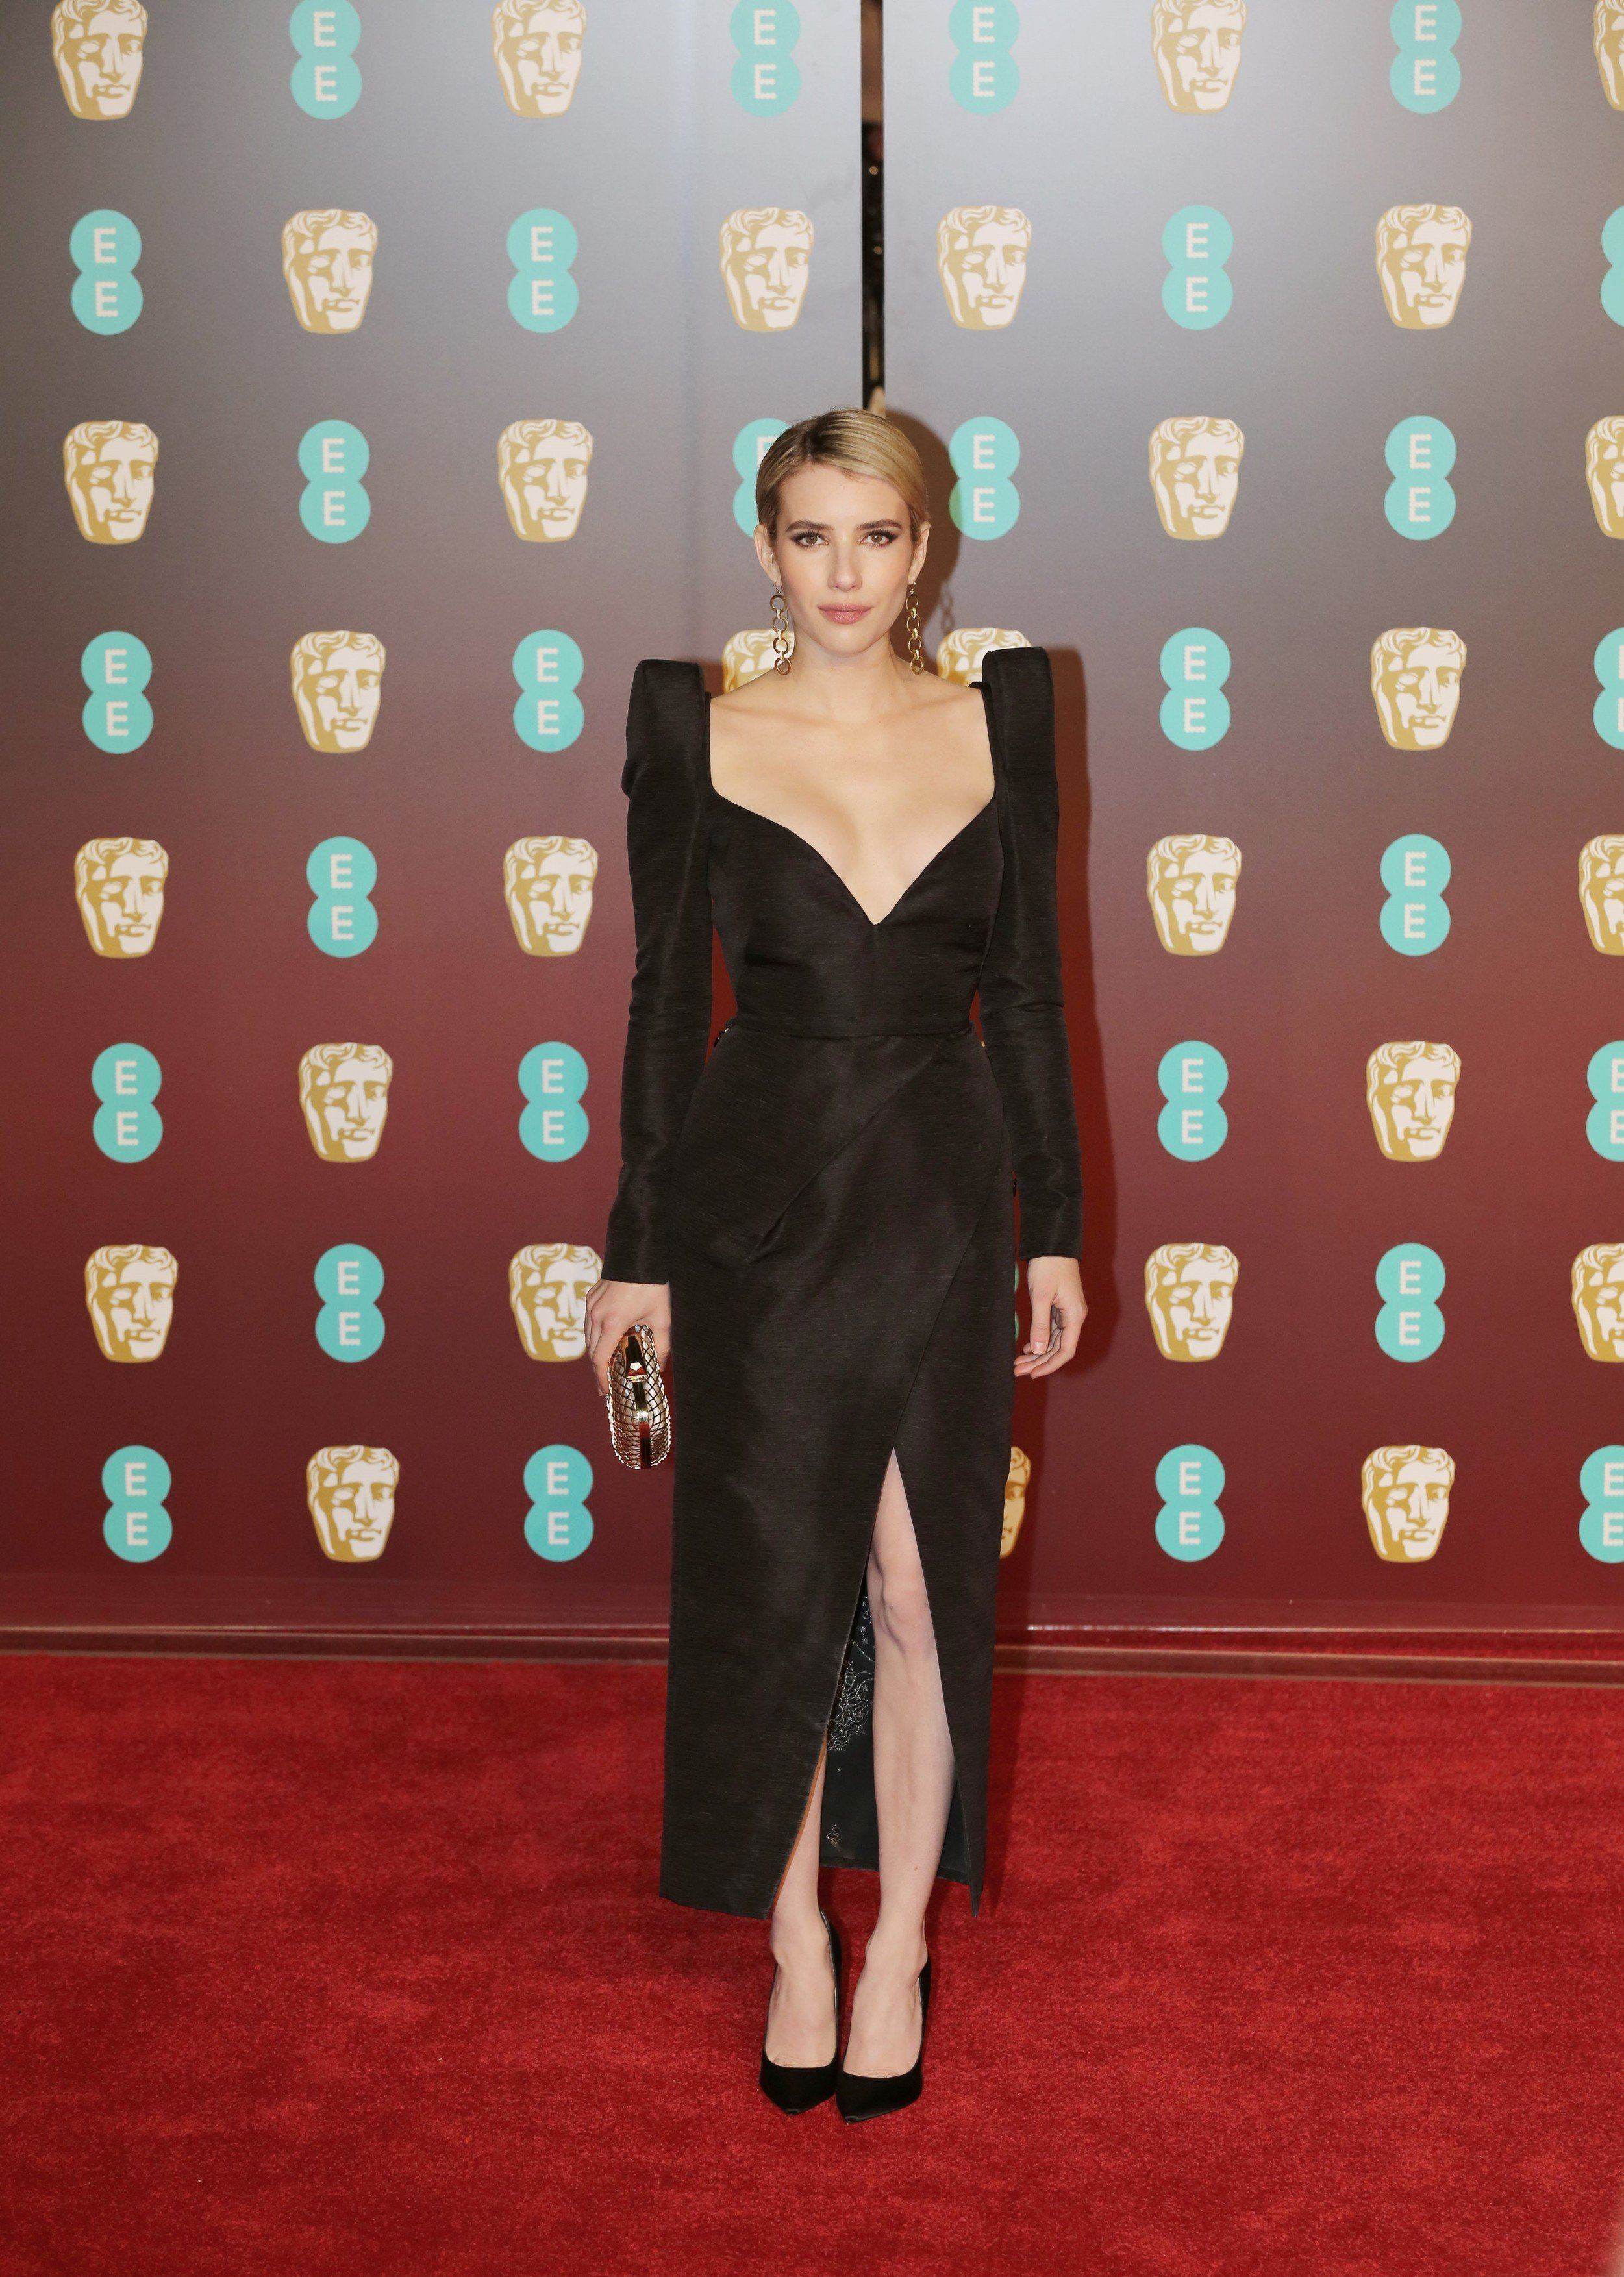 LONDON, ENGLAND - FEBRUARY 18: Emma Roberts attends the EE British Academy Film Awards (BAFTAs) held at Royal Albert Hall on February 18, 2018 in London, England. Yunus Dalgıç / Anadolu Agency, Image: 363641794, License: Rights-managed, Restrictions: , Model Release: no, Credit line: Profimedia, Abaca